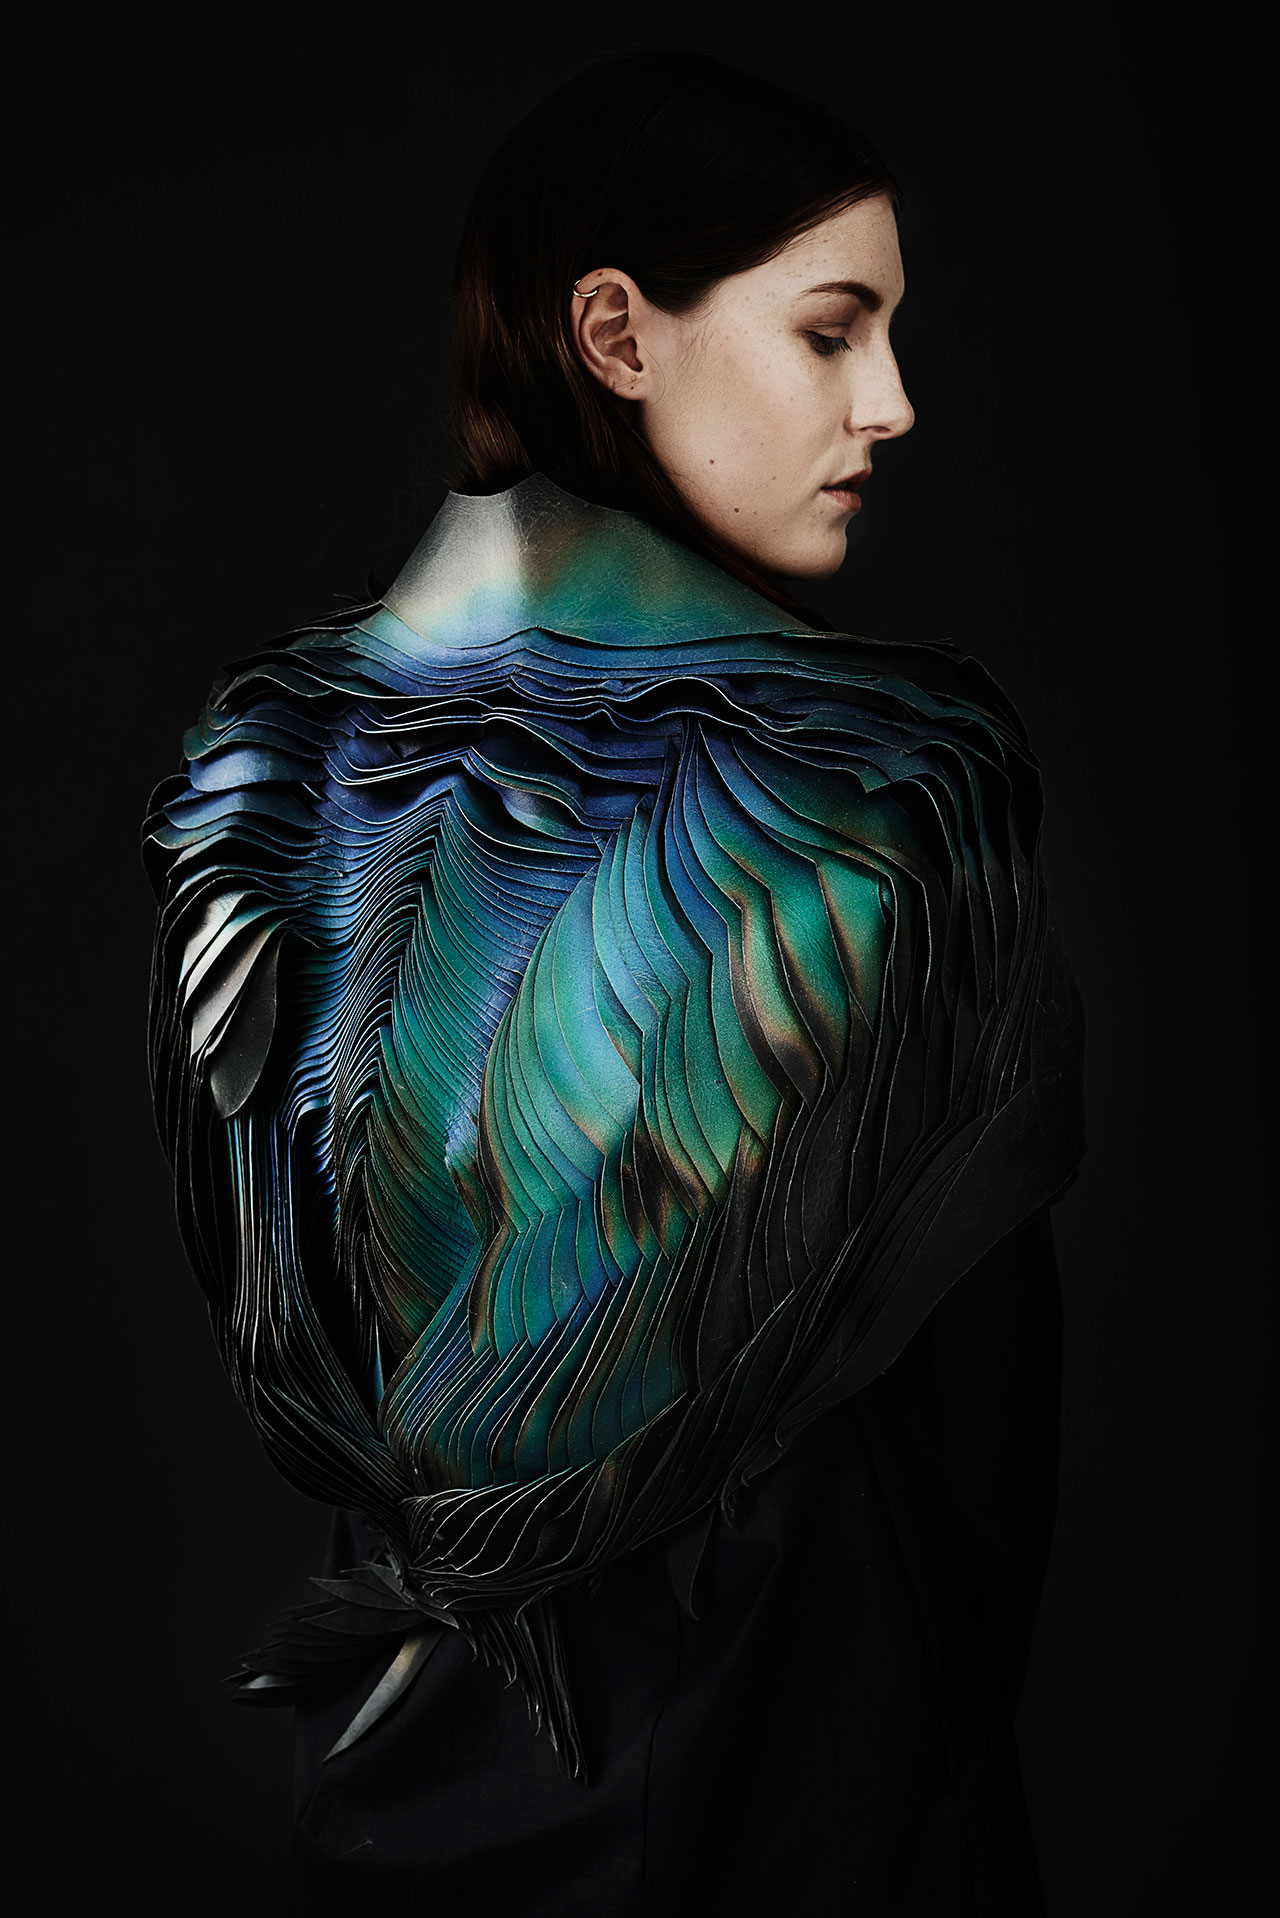 TheUnseen: Lauren Bowker, Jacket, from the AIR collection, 2014, Leather, wind-reactive ink. Jonny Lee Photography © TheUnseen.